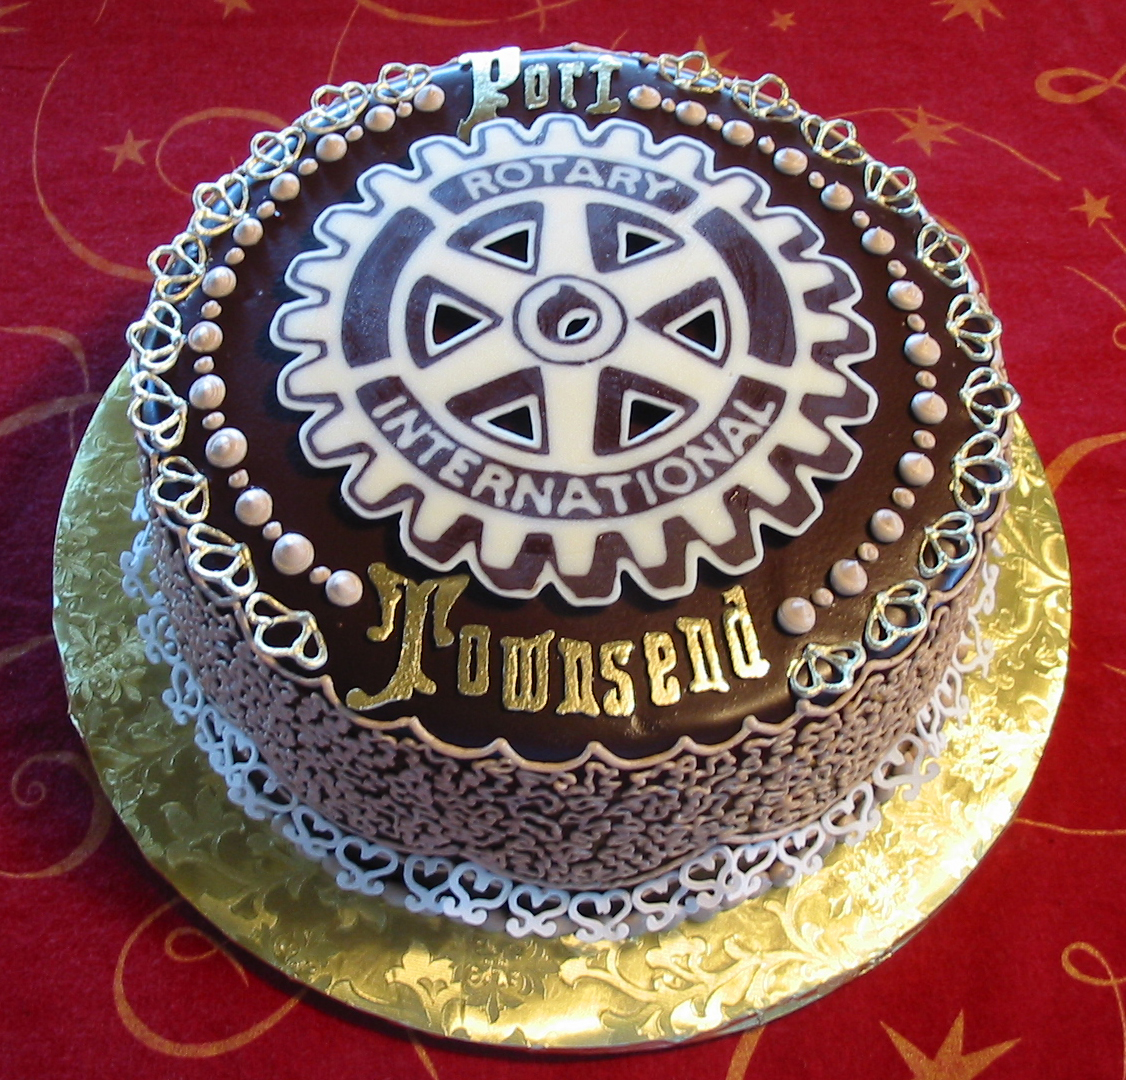 Port Townsend Rotary fundraiser cake